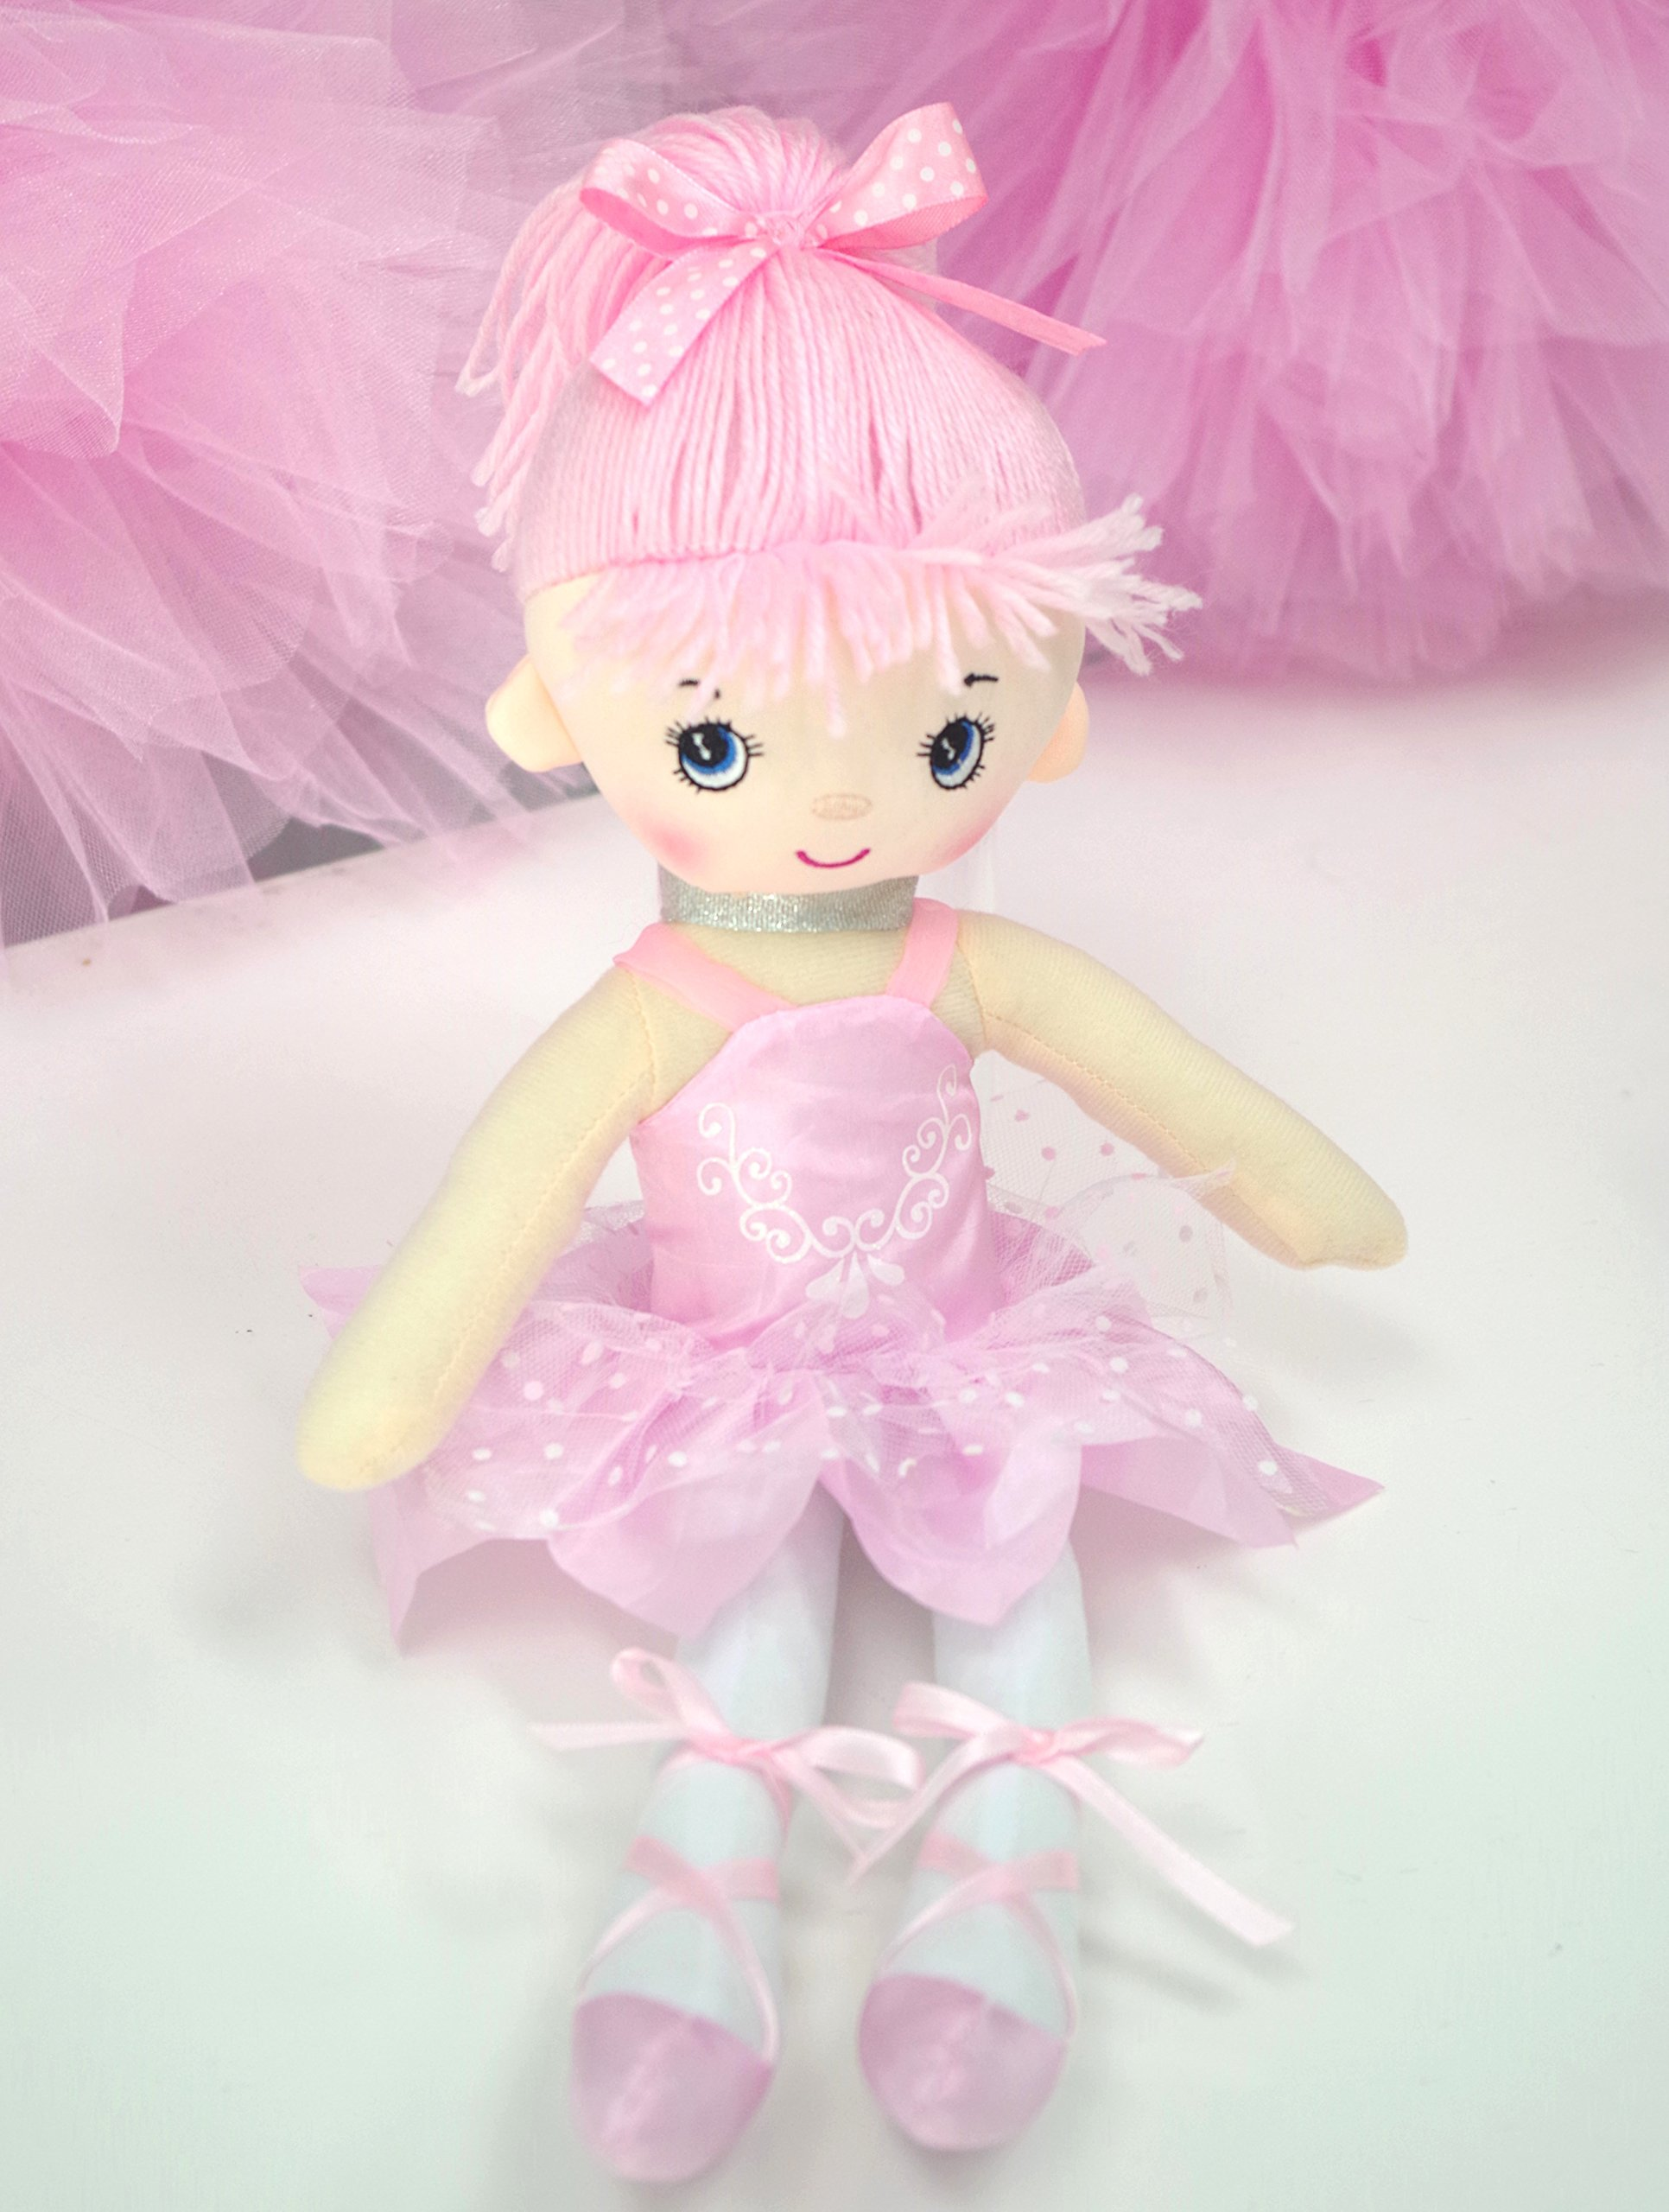 "Butterfly Craze 17"" Ballerina Doll for Little Girls' Ballet Dance Recital and Birthday Gifts (Pink)"